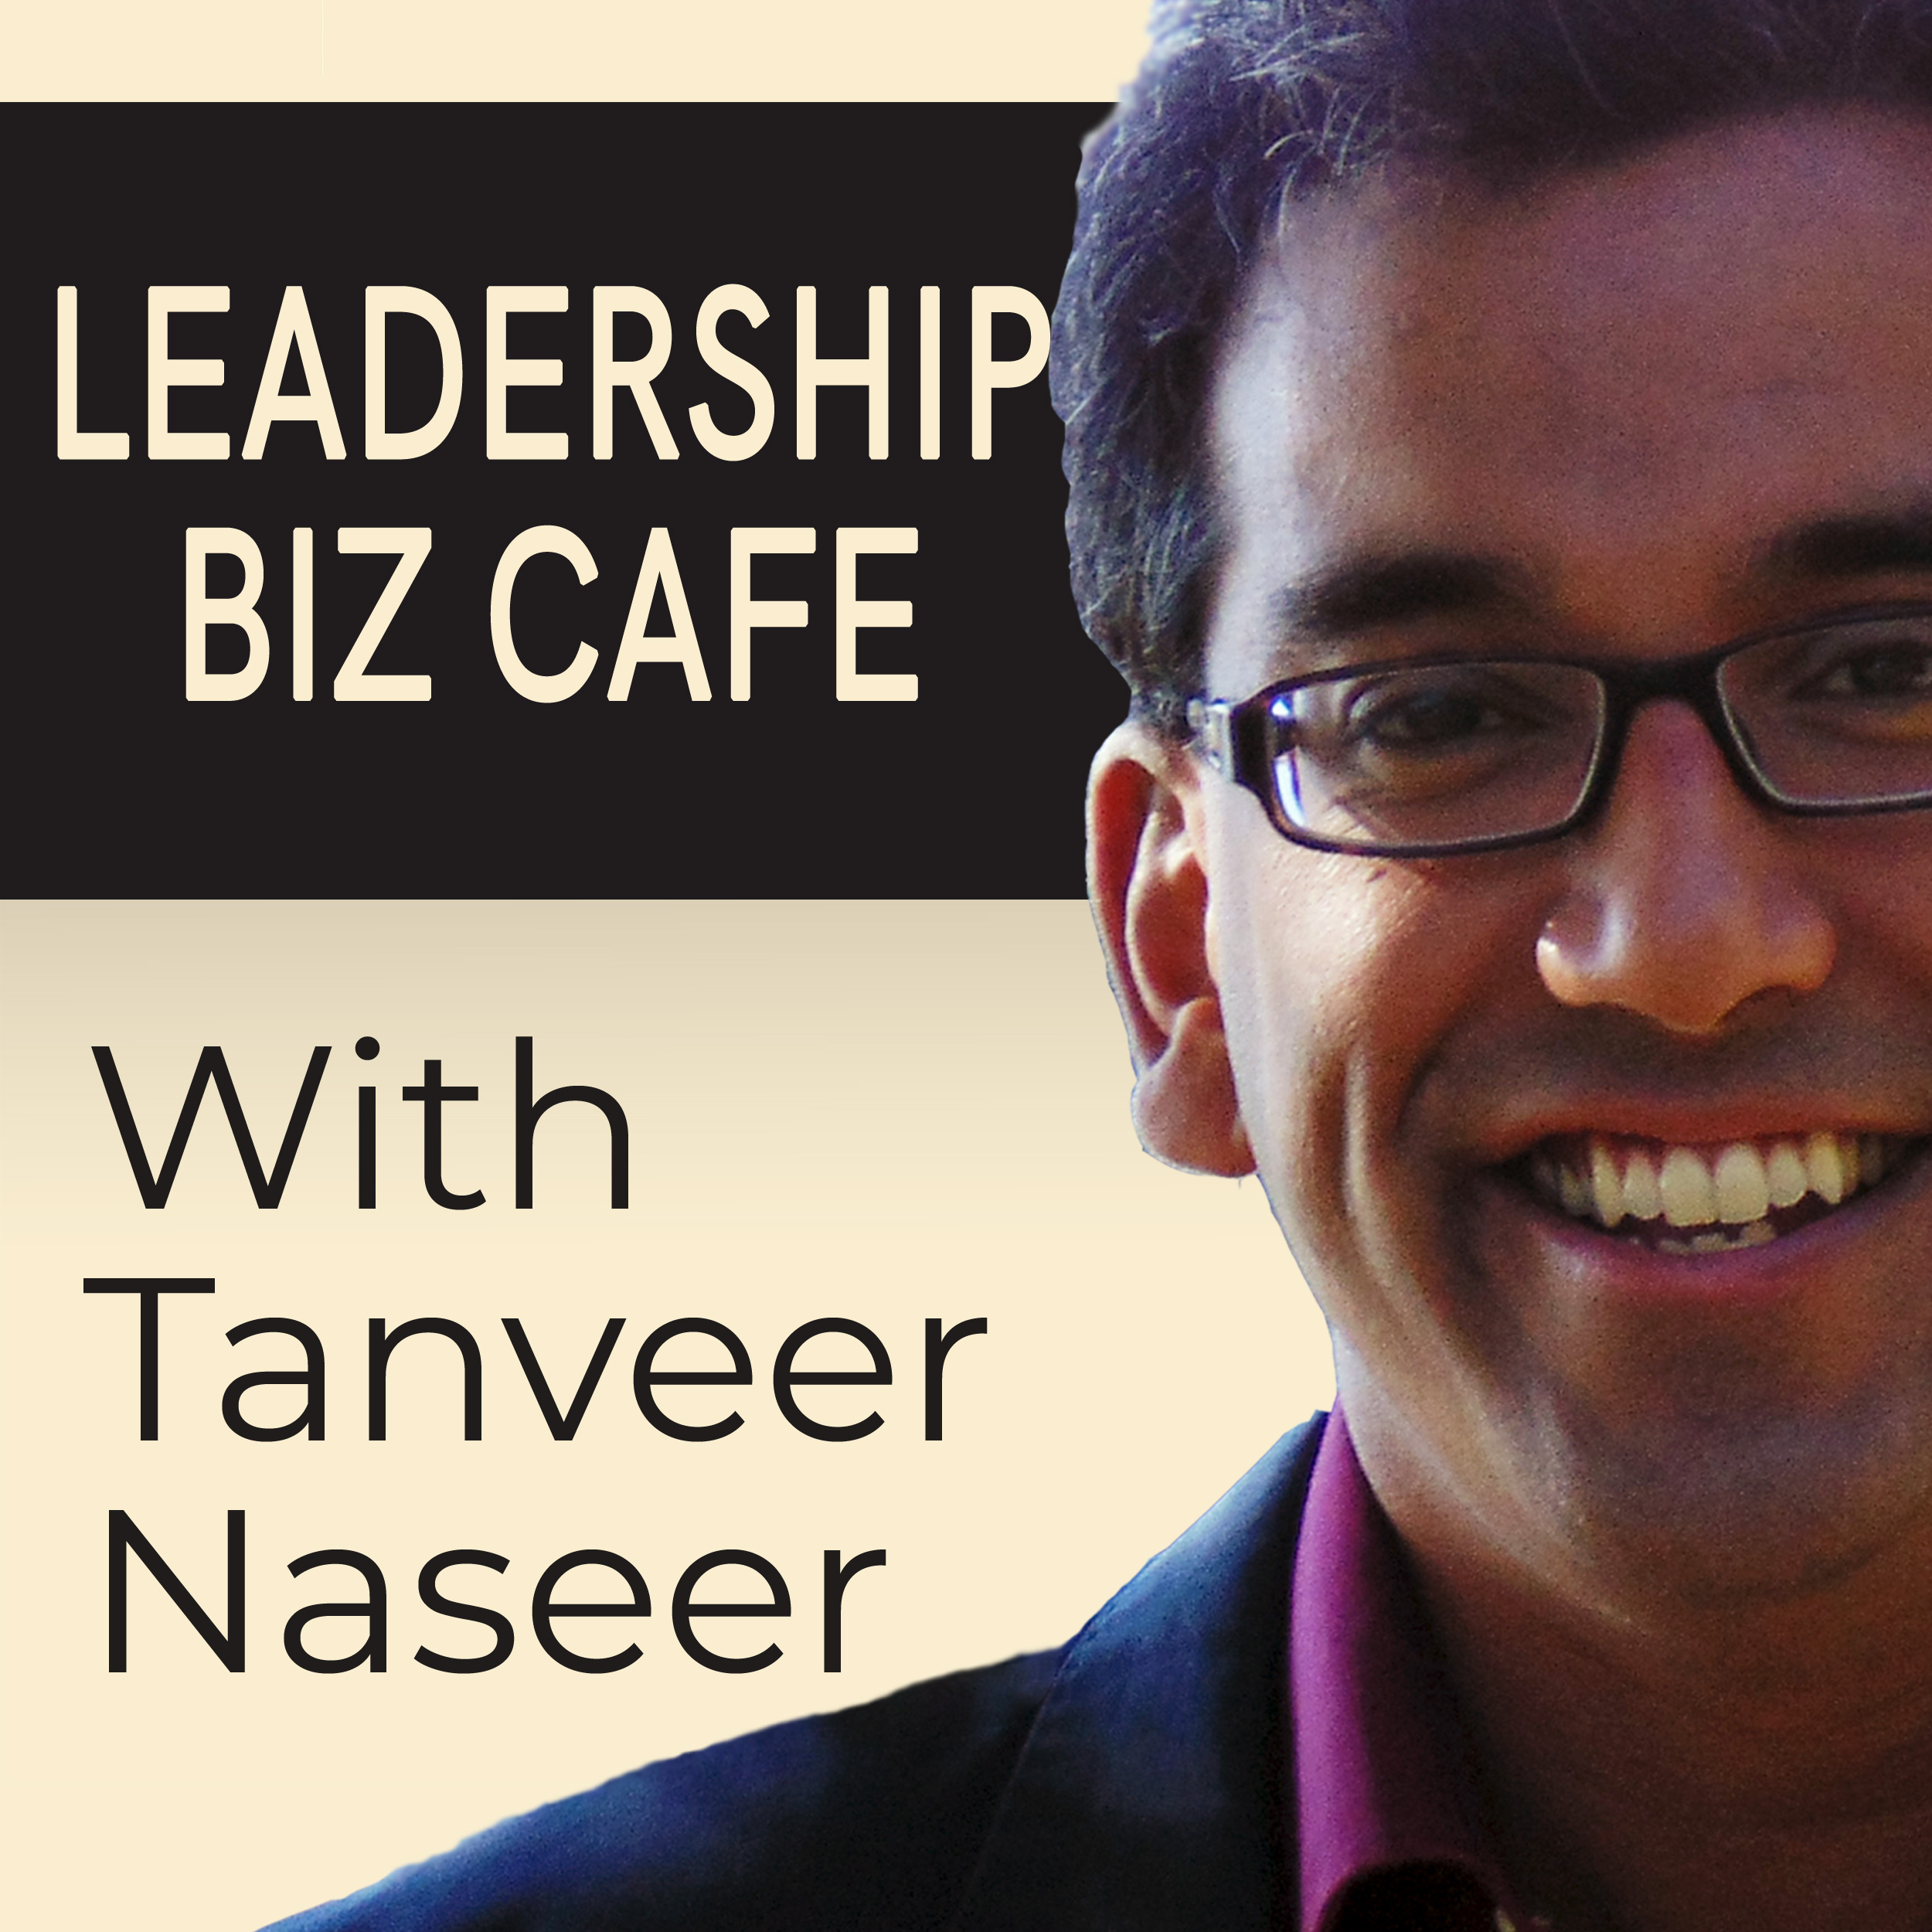 Leadership Biz Cafe with Tanveer Naseer